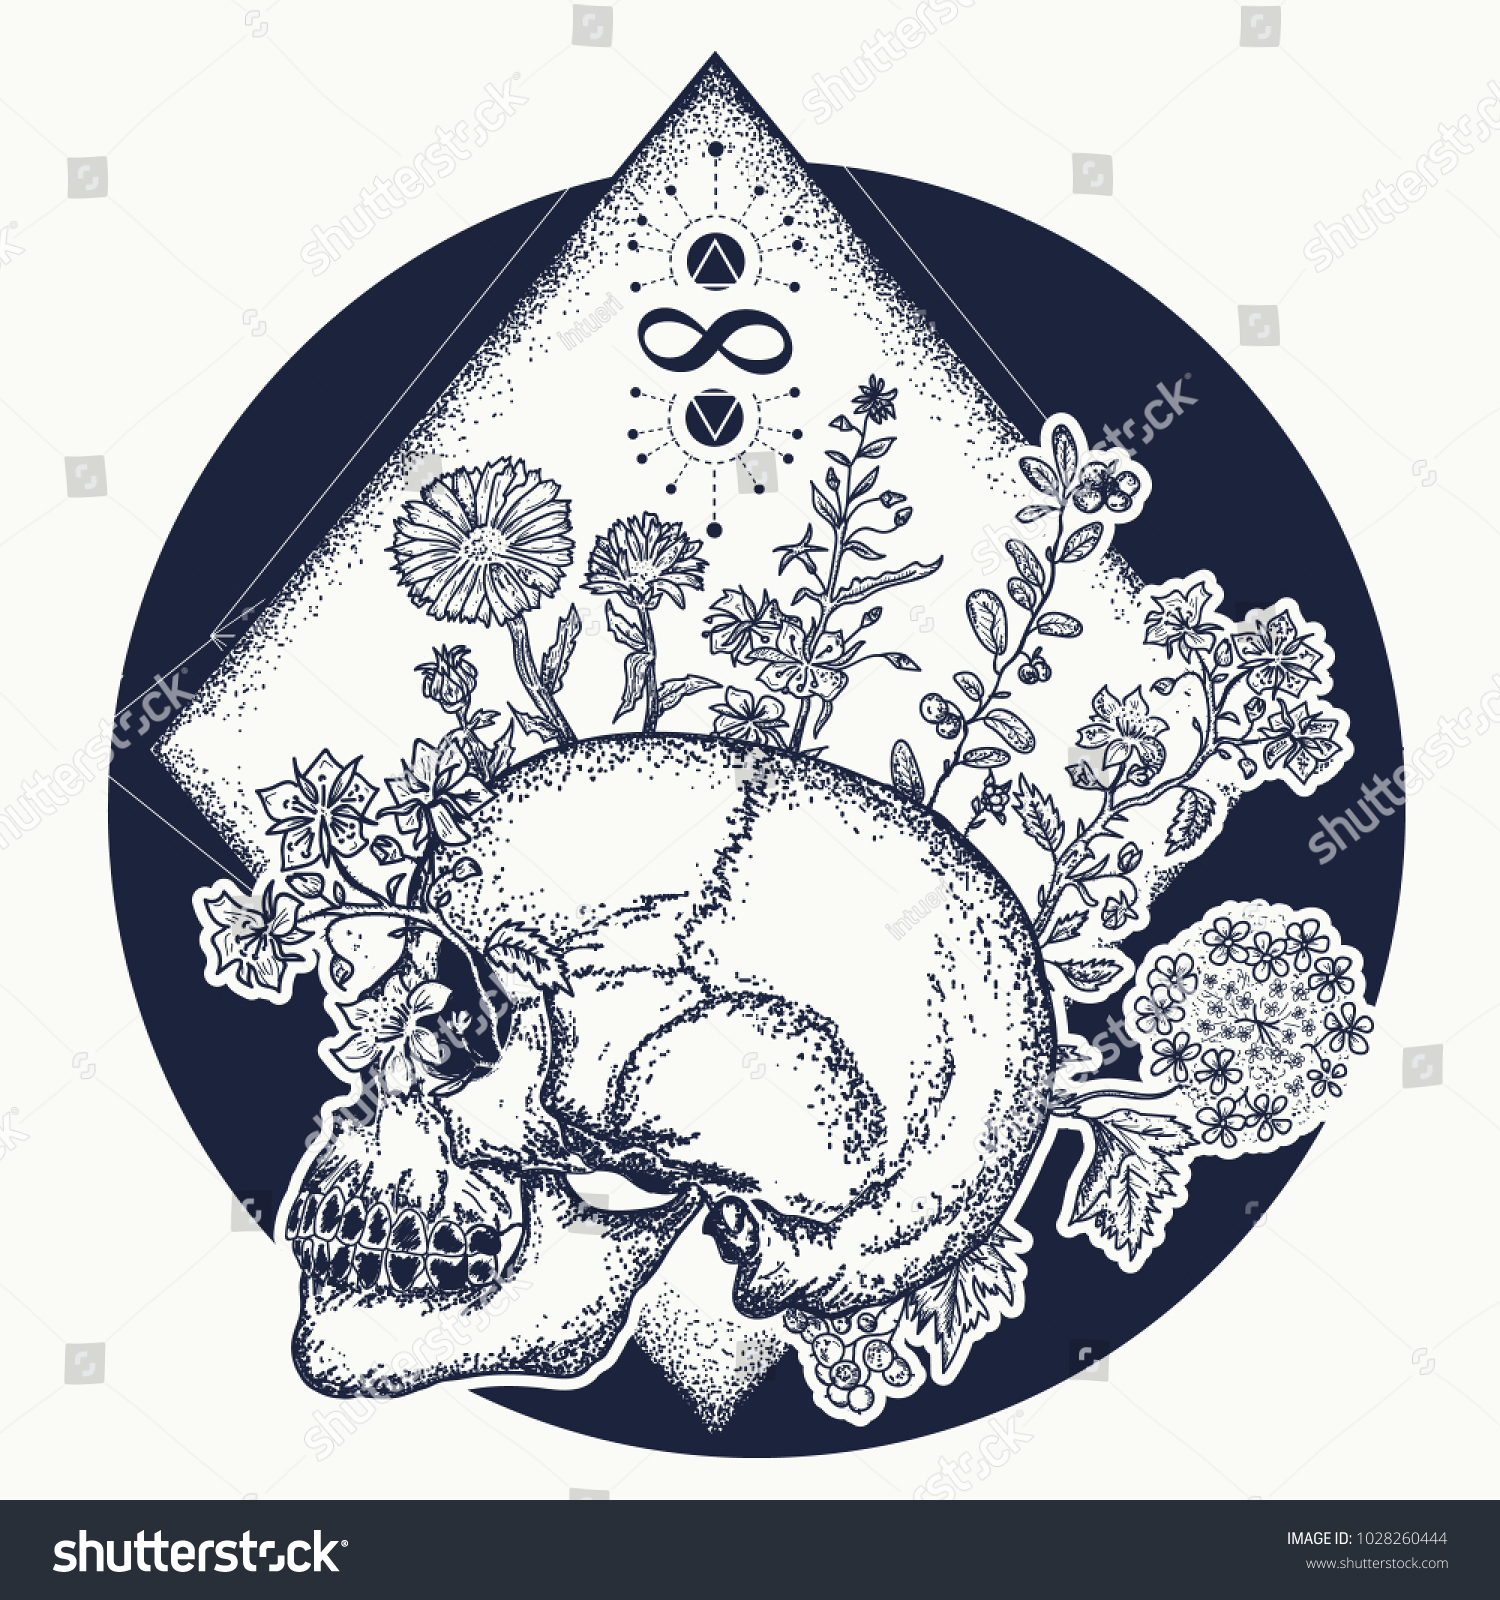 Human Skull Through Which Flowers Symbol Stock Vector Royalty Free